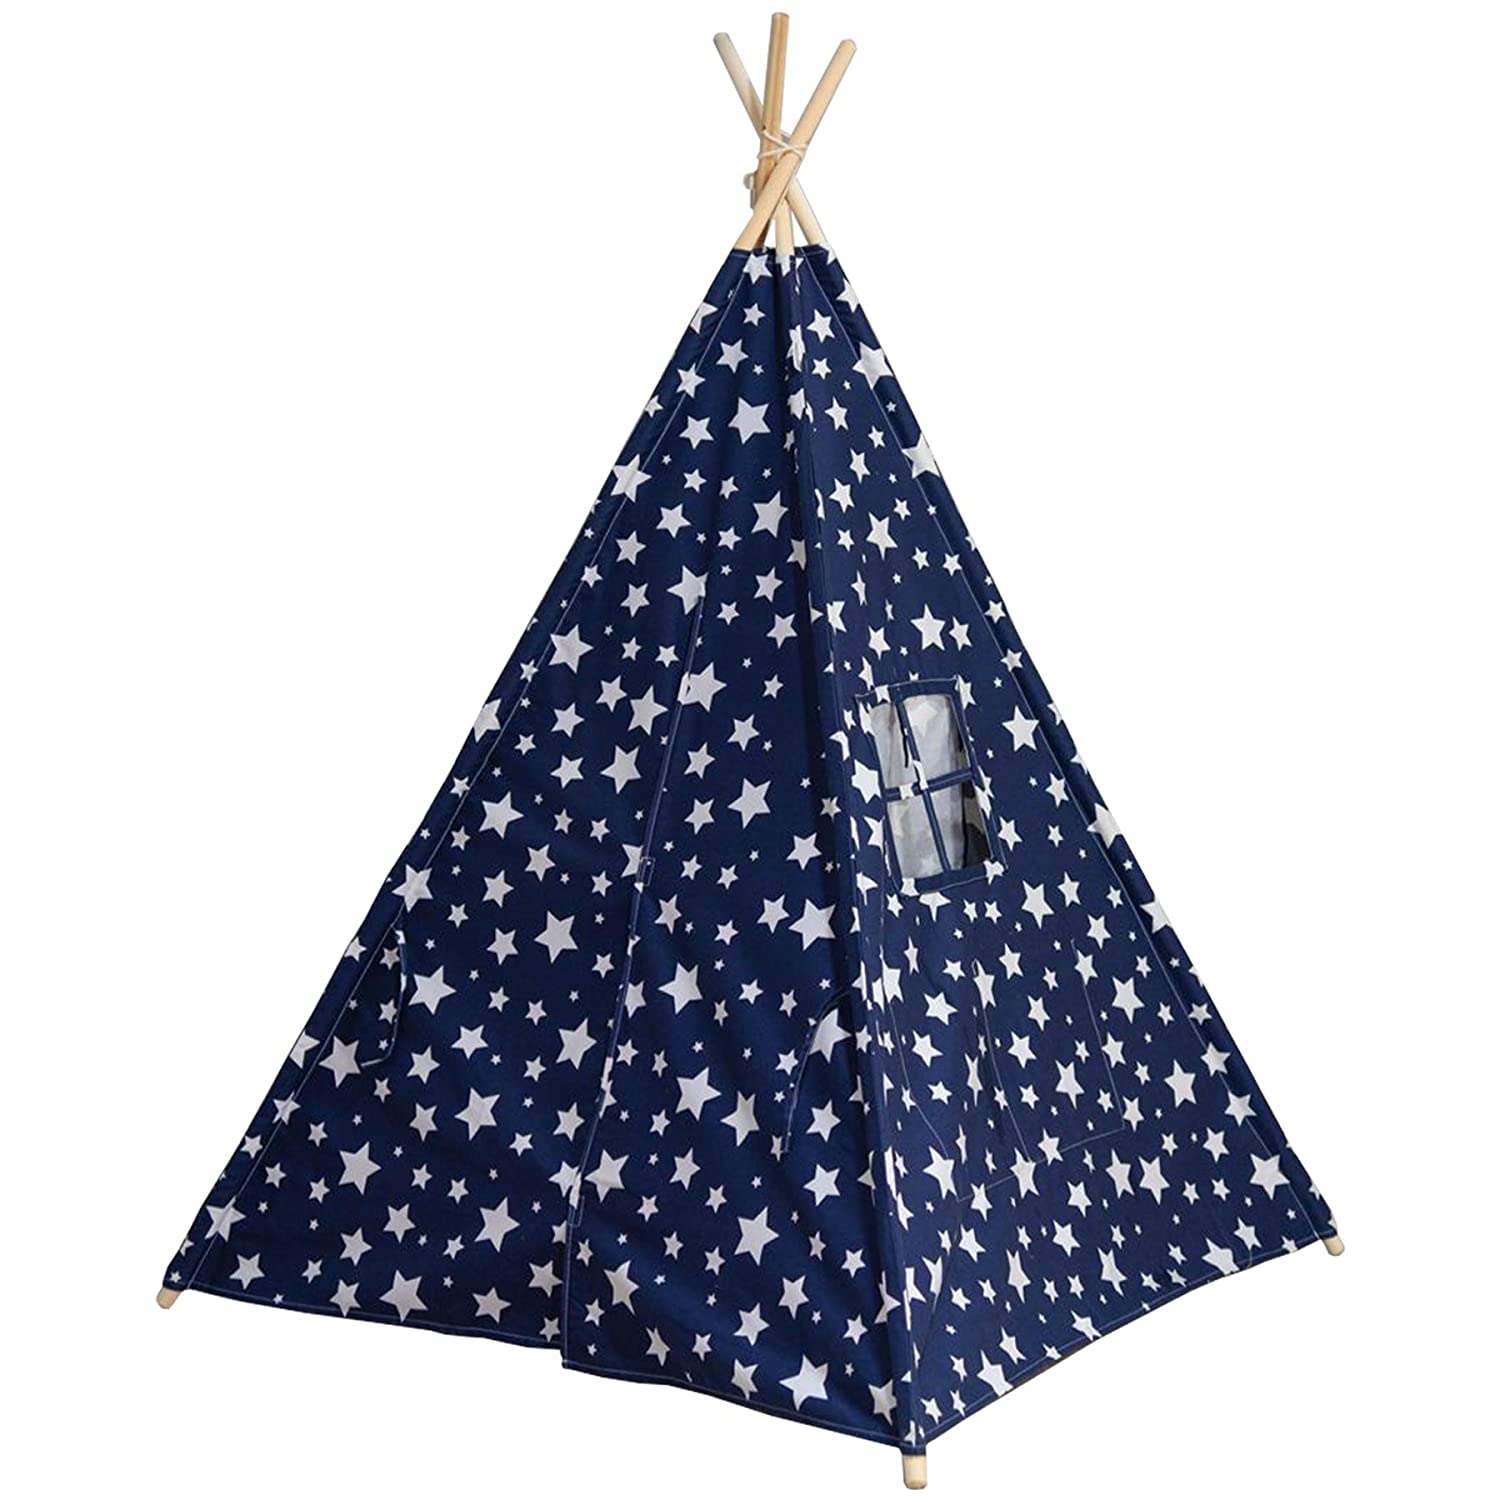 Blue 145cm Tall Baby Joy Portable Kids Children Indoor Outdoor Teepee Tipi Wigwam Play Tent Playhouse with carry case